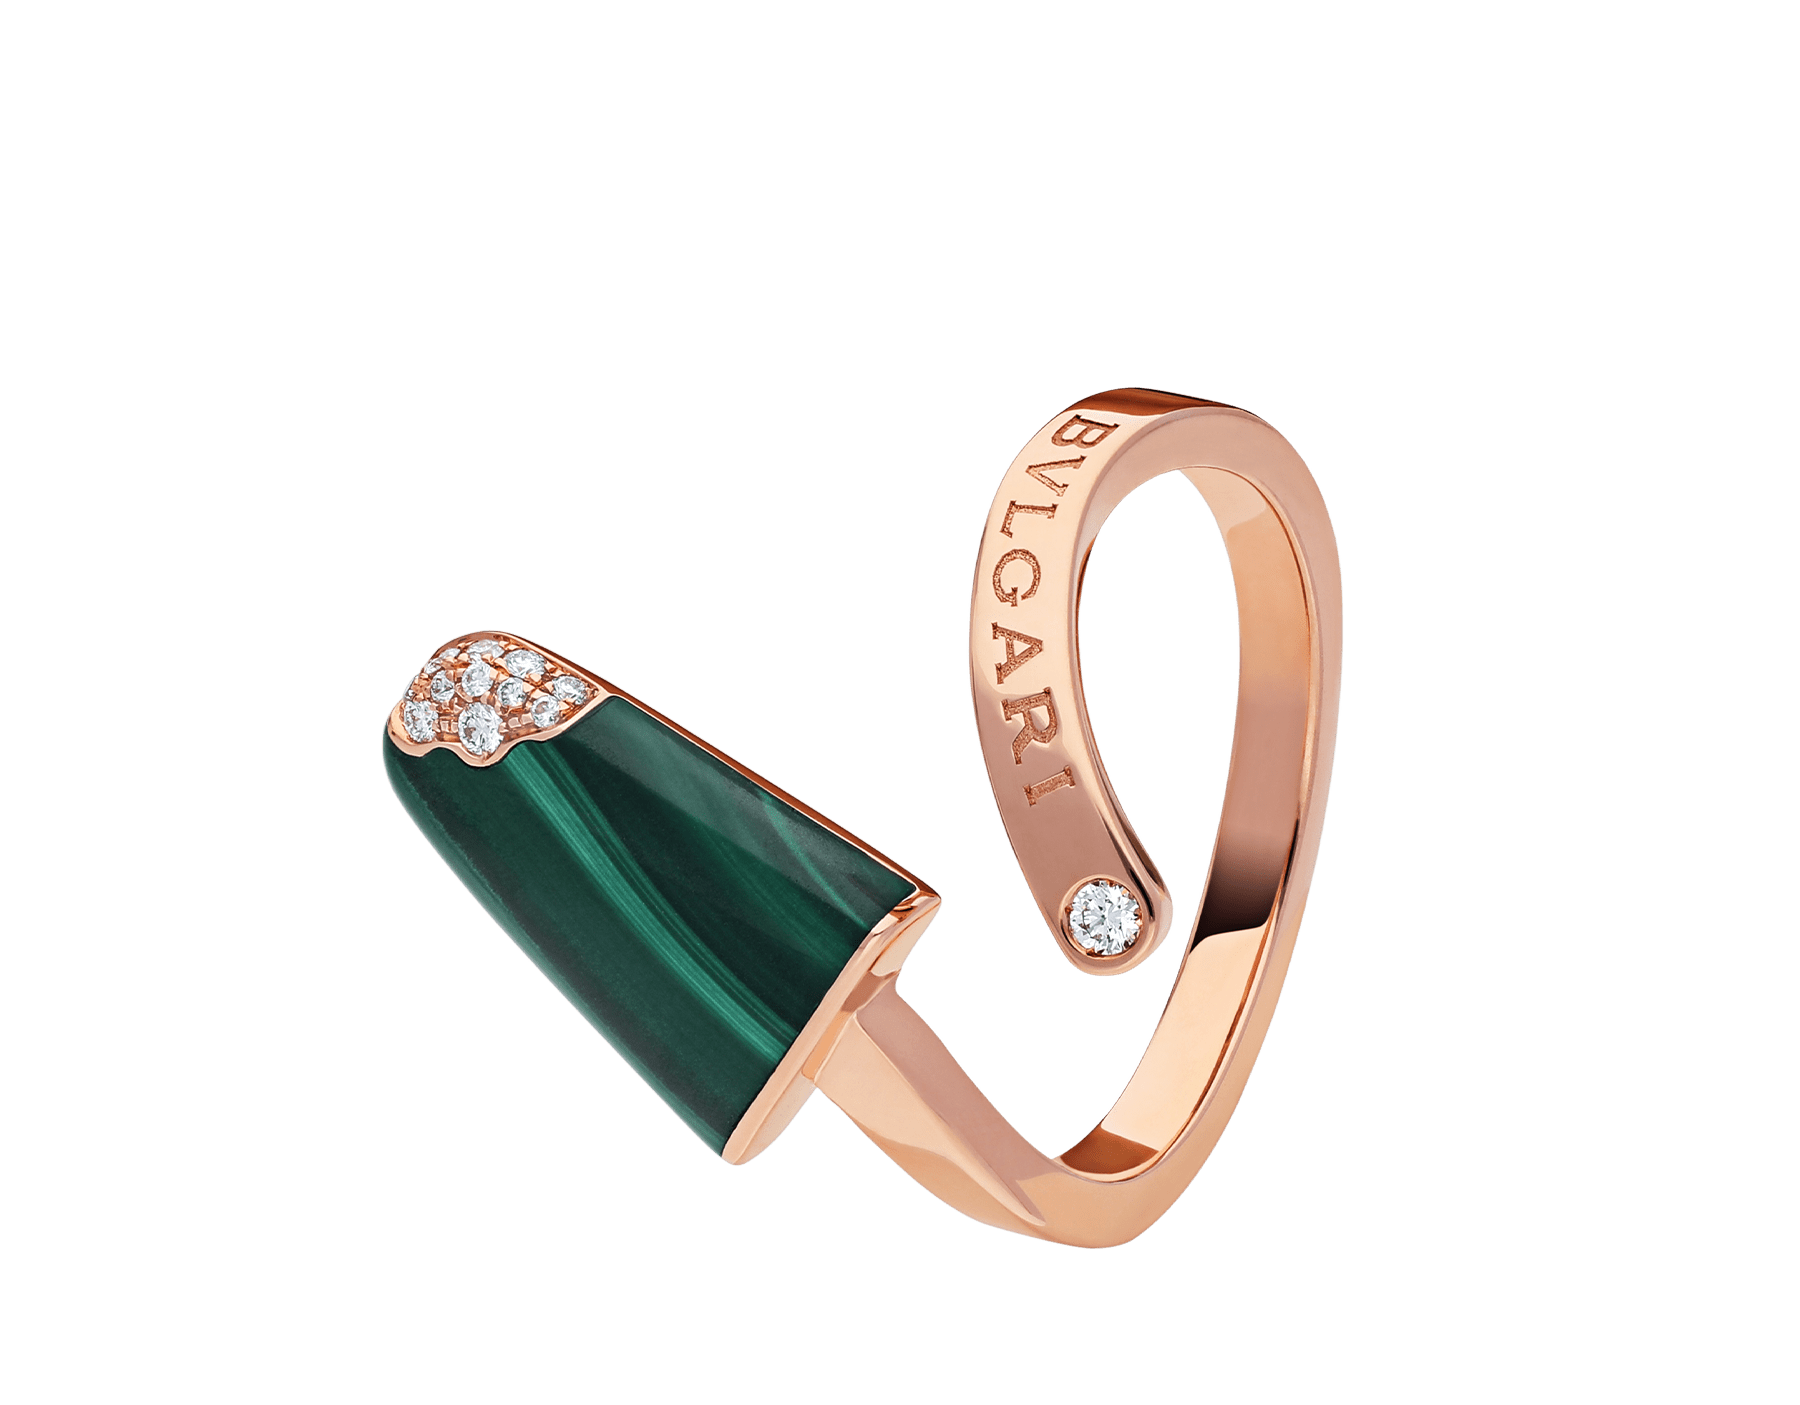 BVLGARI BVLGARI Gelati 18 kt rose gold ring set with malachite and pavé diamonds AN858329 image 2